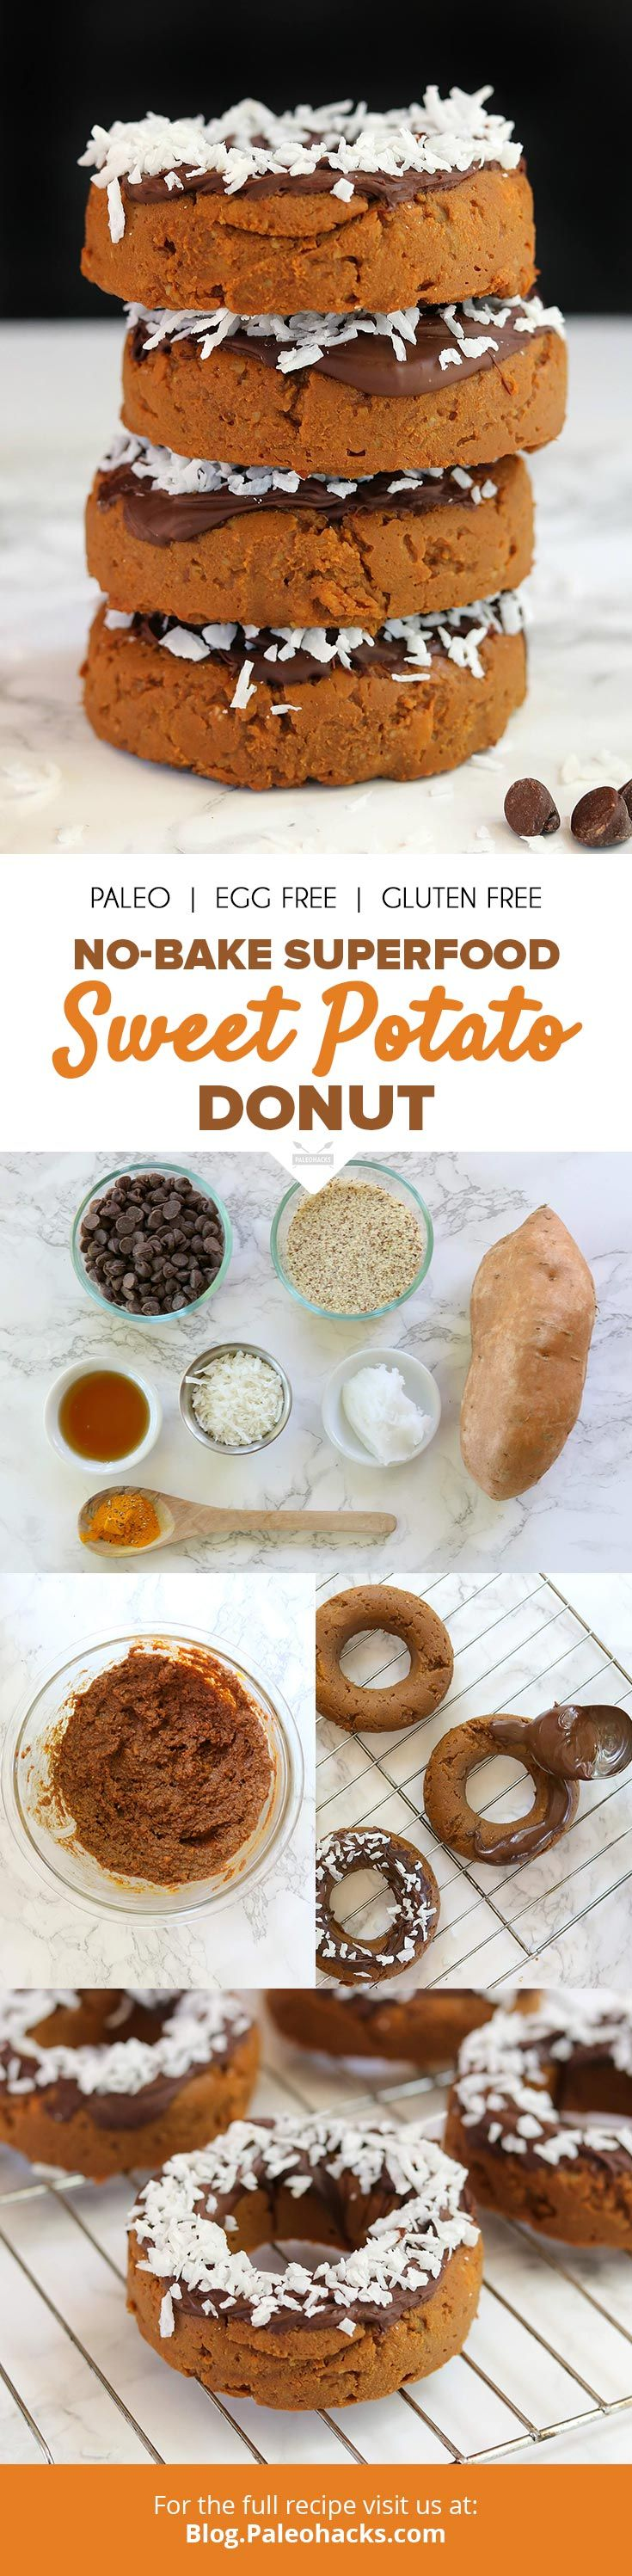 All the decadence of a donut without the processed ingredients and zero baking! These sweet potato, turmeric-packed donuts get dipped in antioxidant dark chocolate for a superfood treat. Get the recipe here: http://paleo.co/SWPdonut